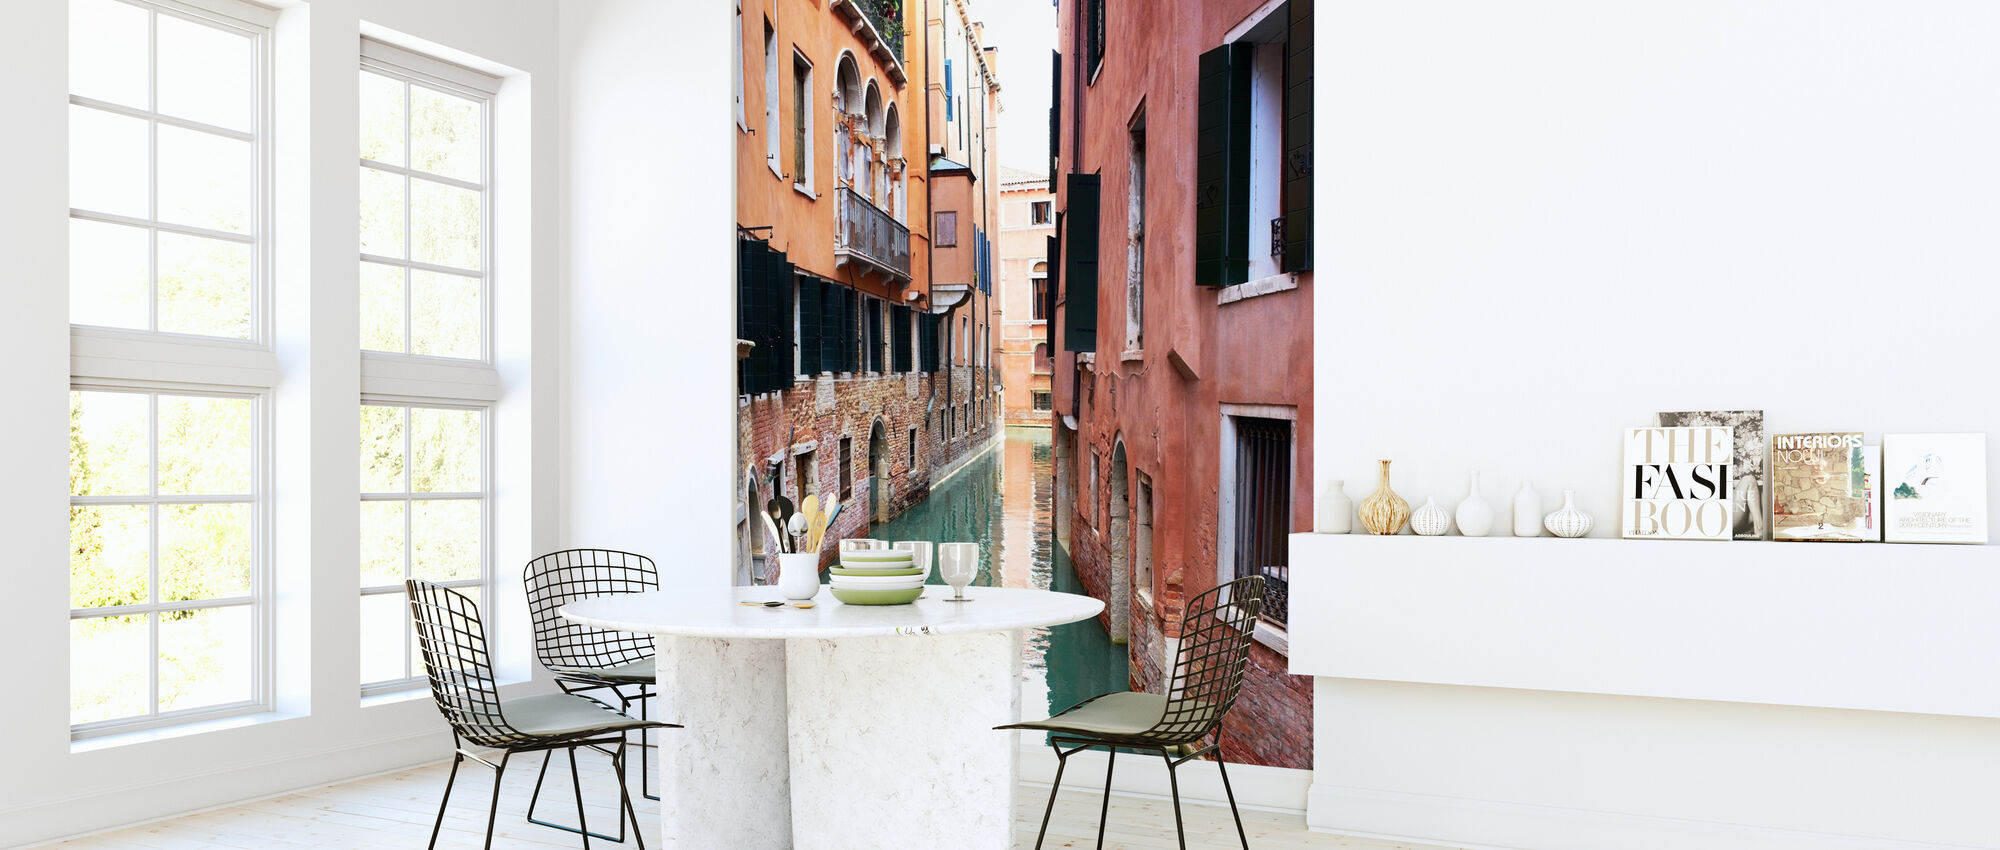 Tranquility in Venice - Wallpaper - Kitchen